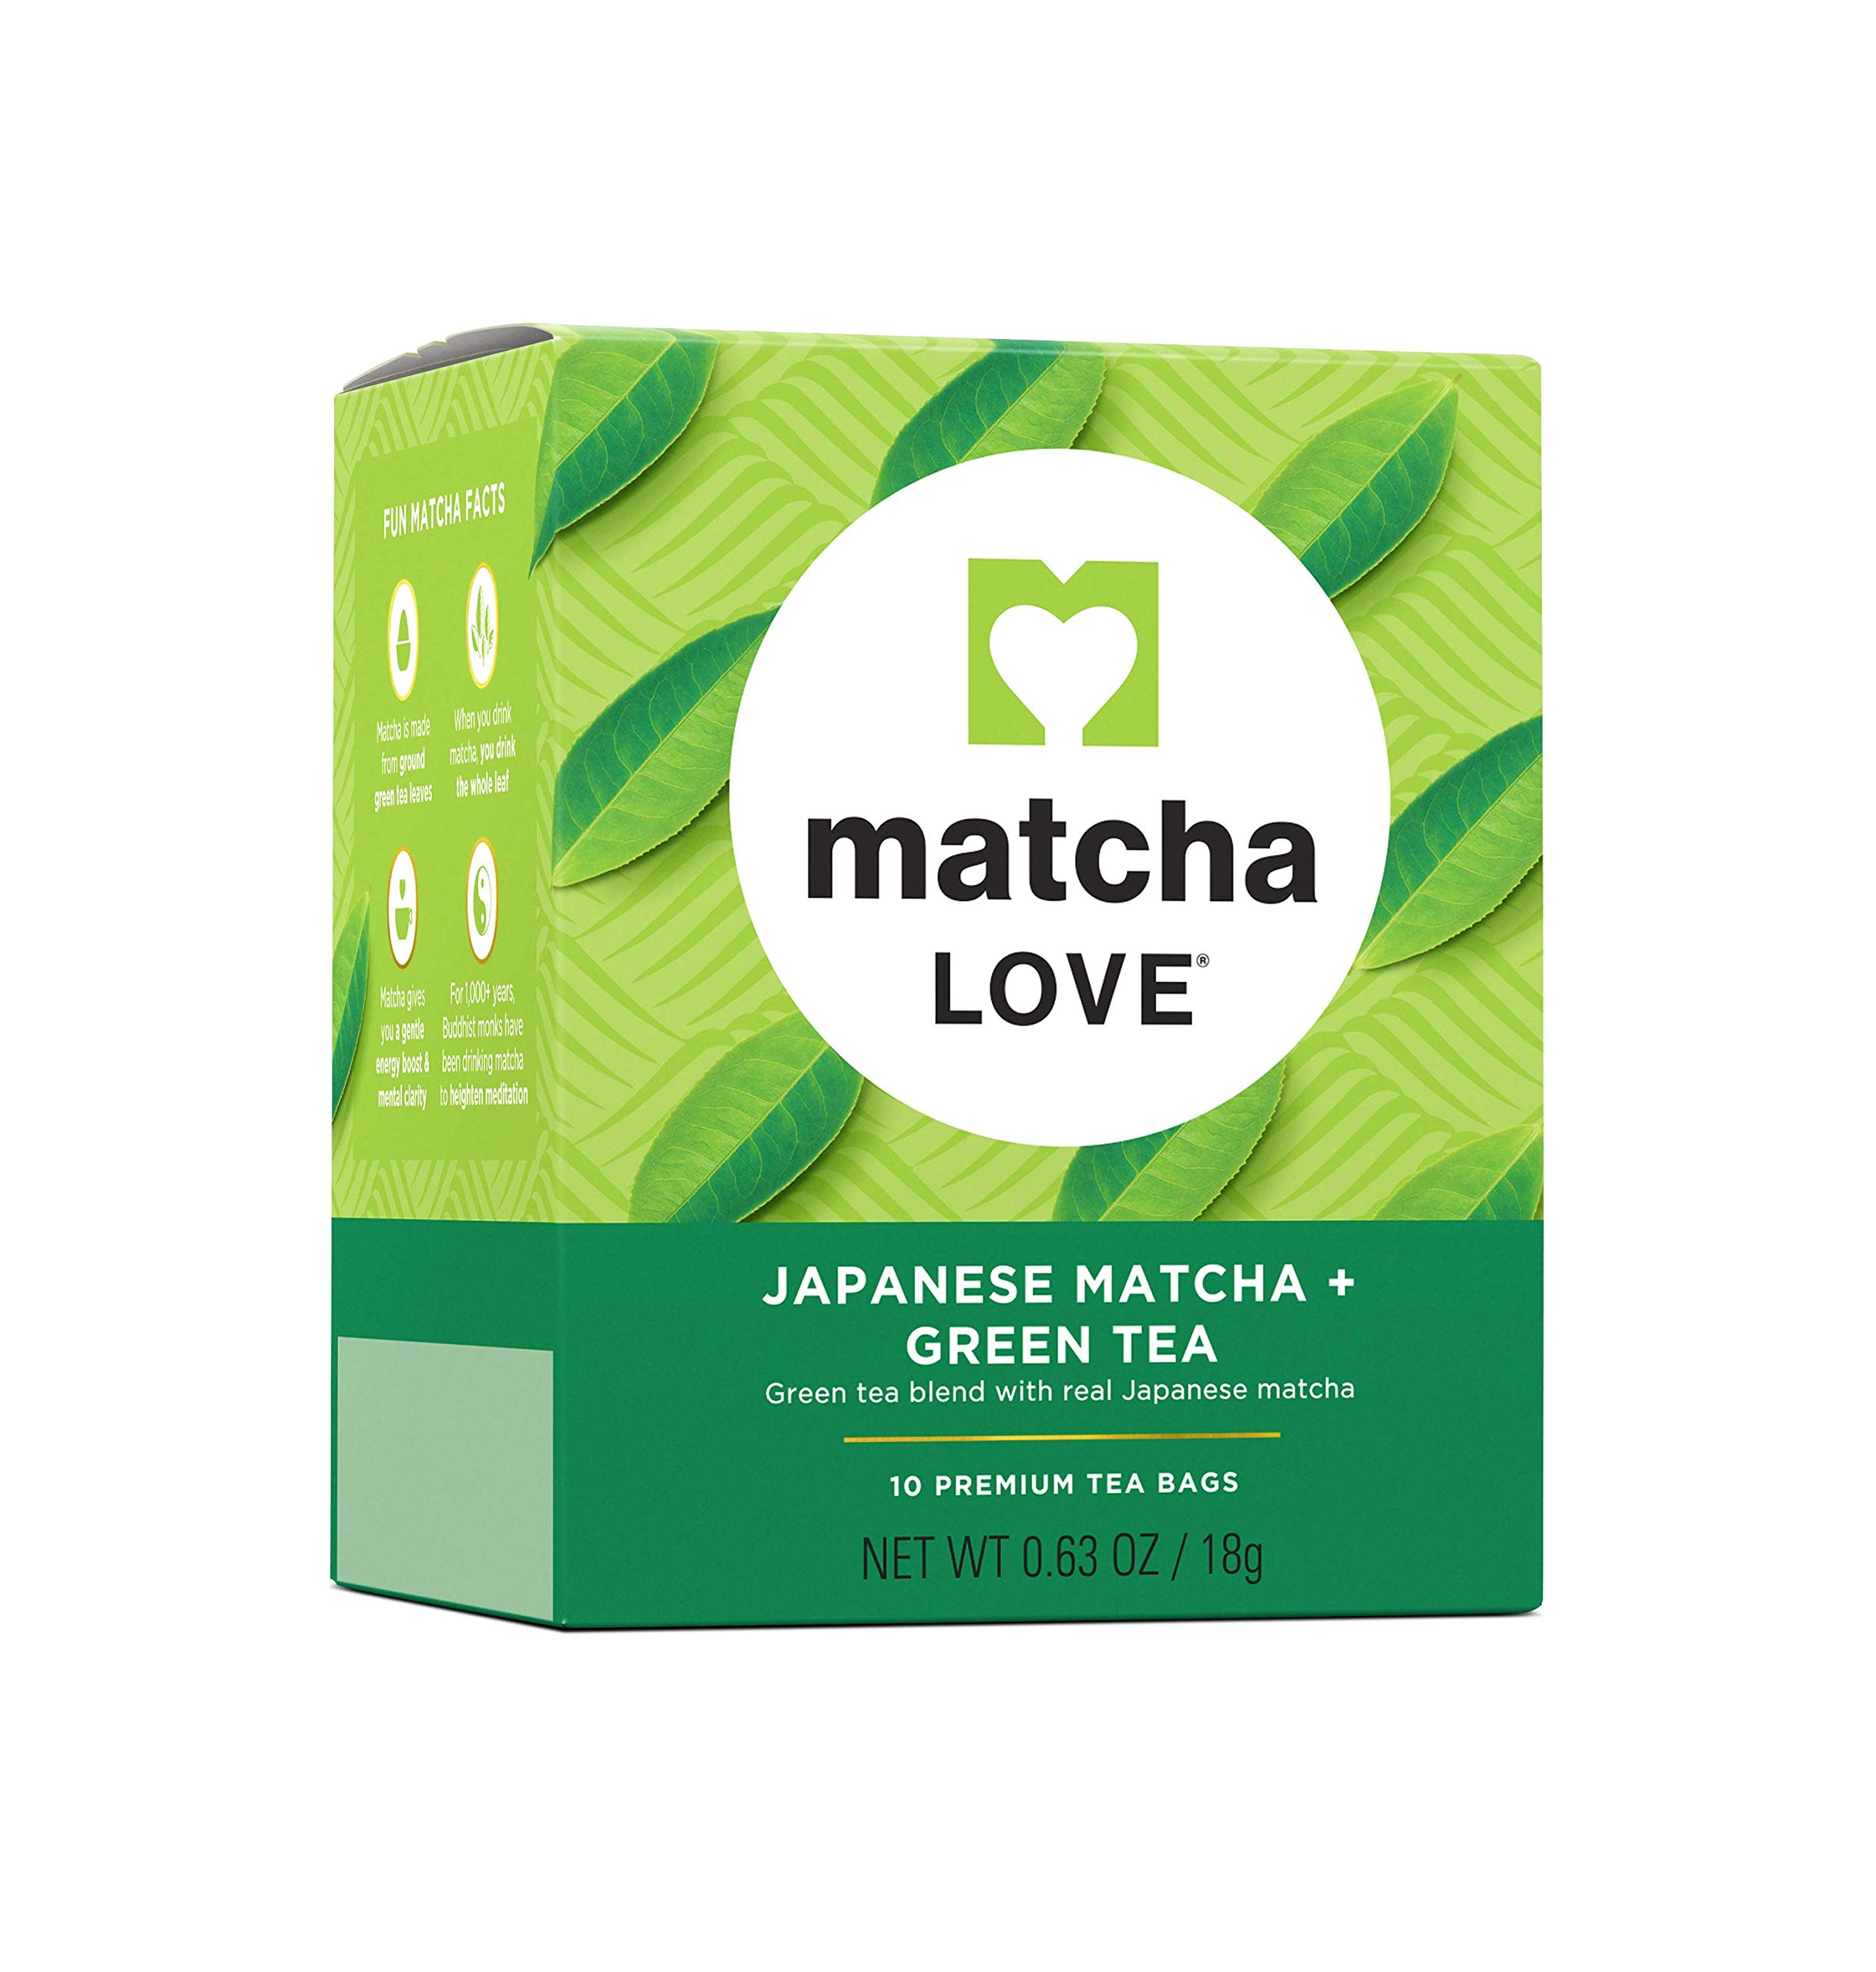 Matcha Love Tea Bags 10 Count (Pack of 10) Zero Calories No Artificial Sweeteners Caffeinated Good Source of Vitamin C and Antioxidants BPA Free by Matcha Love